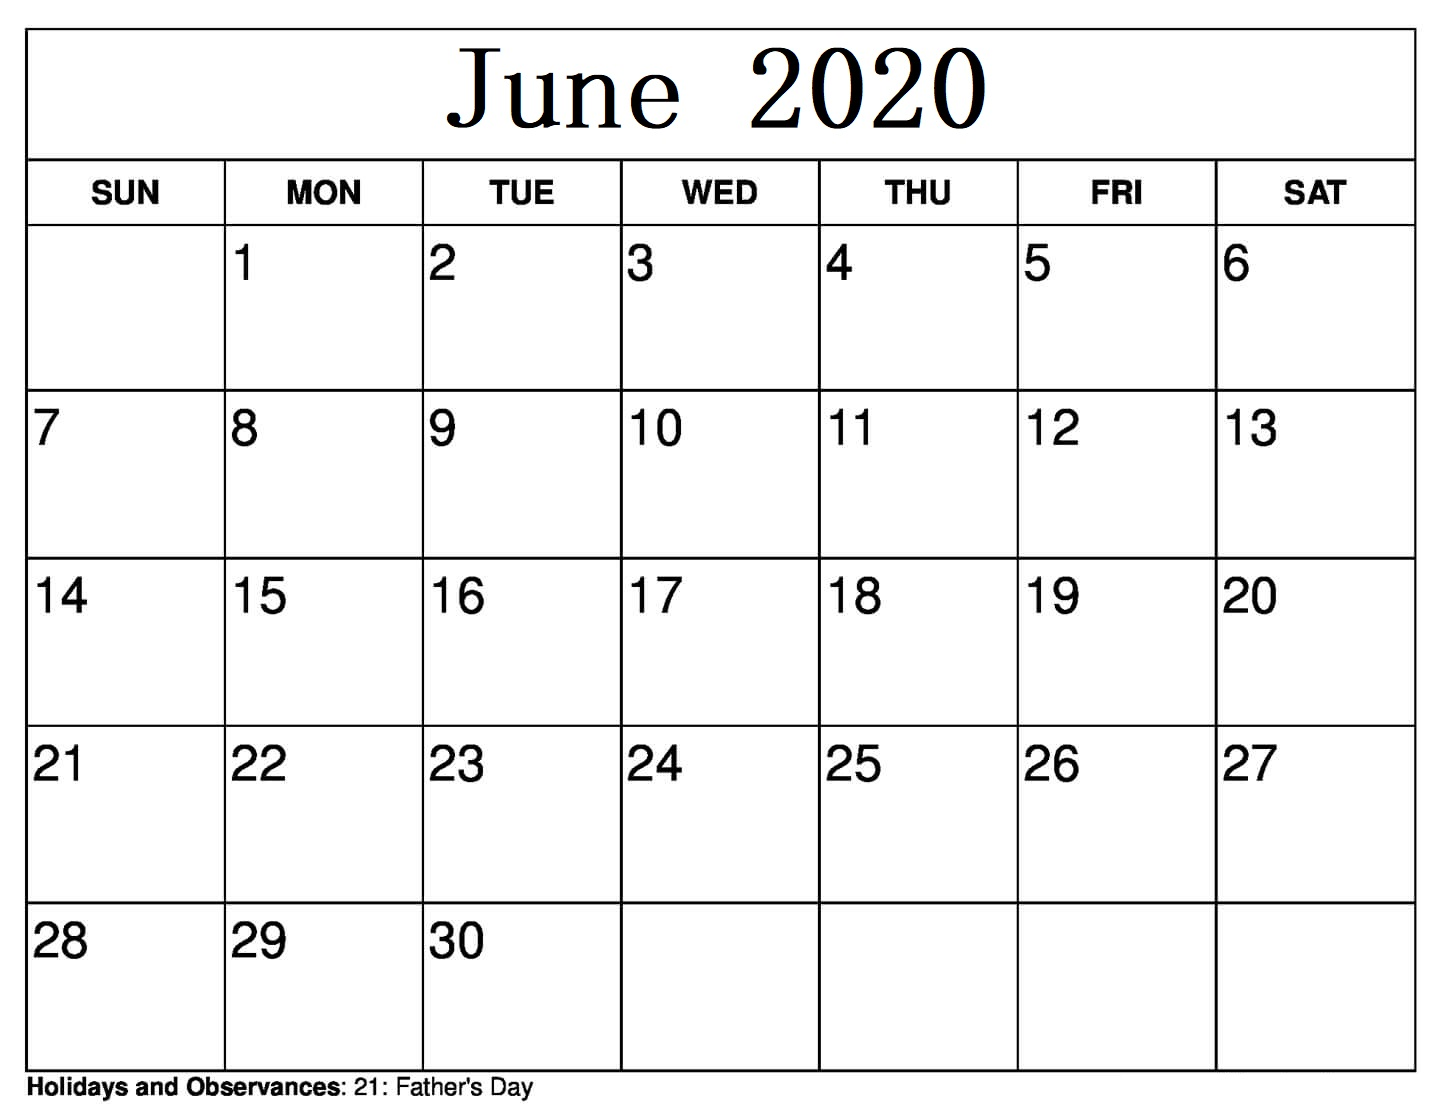 June 2020 Calendar Layout